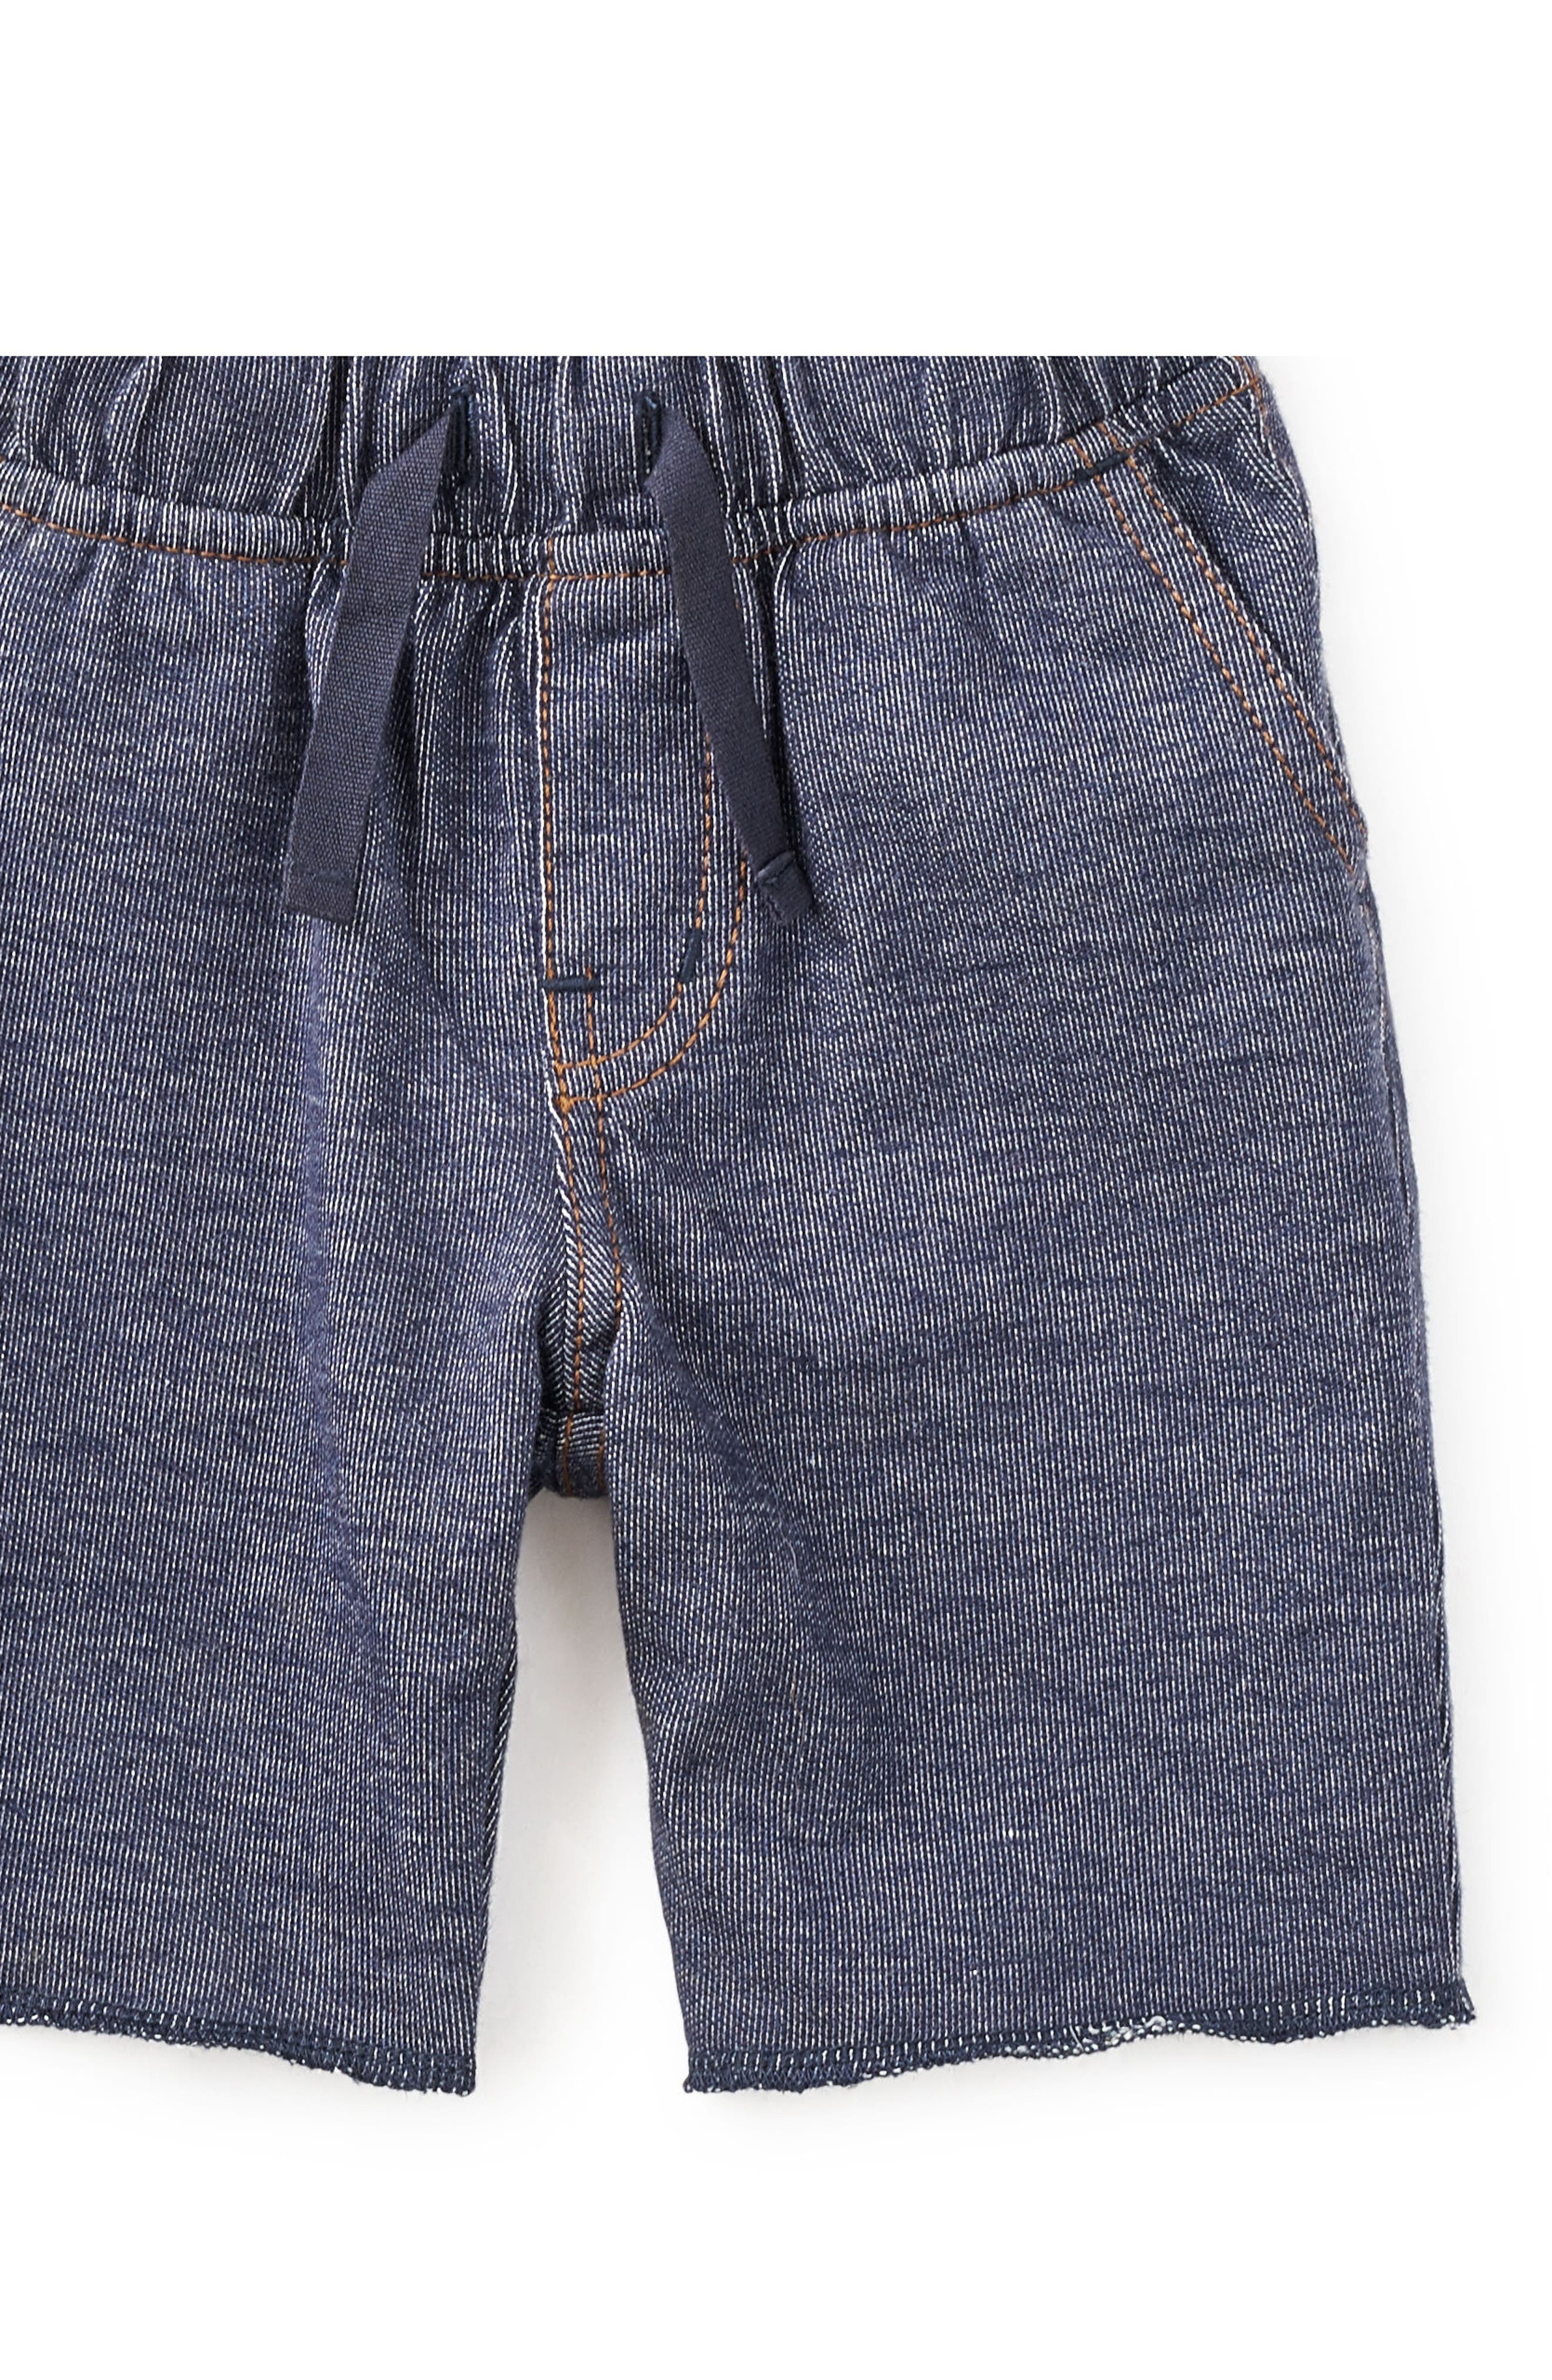 Tea Collection Shorts (Baby Boys)